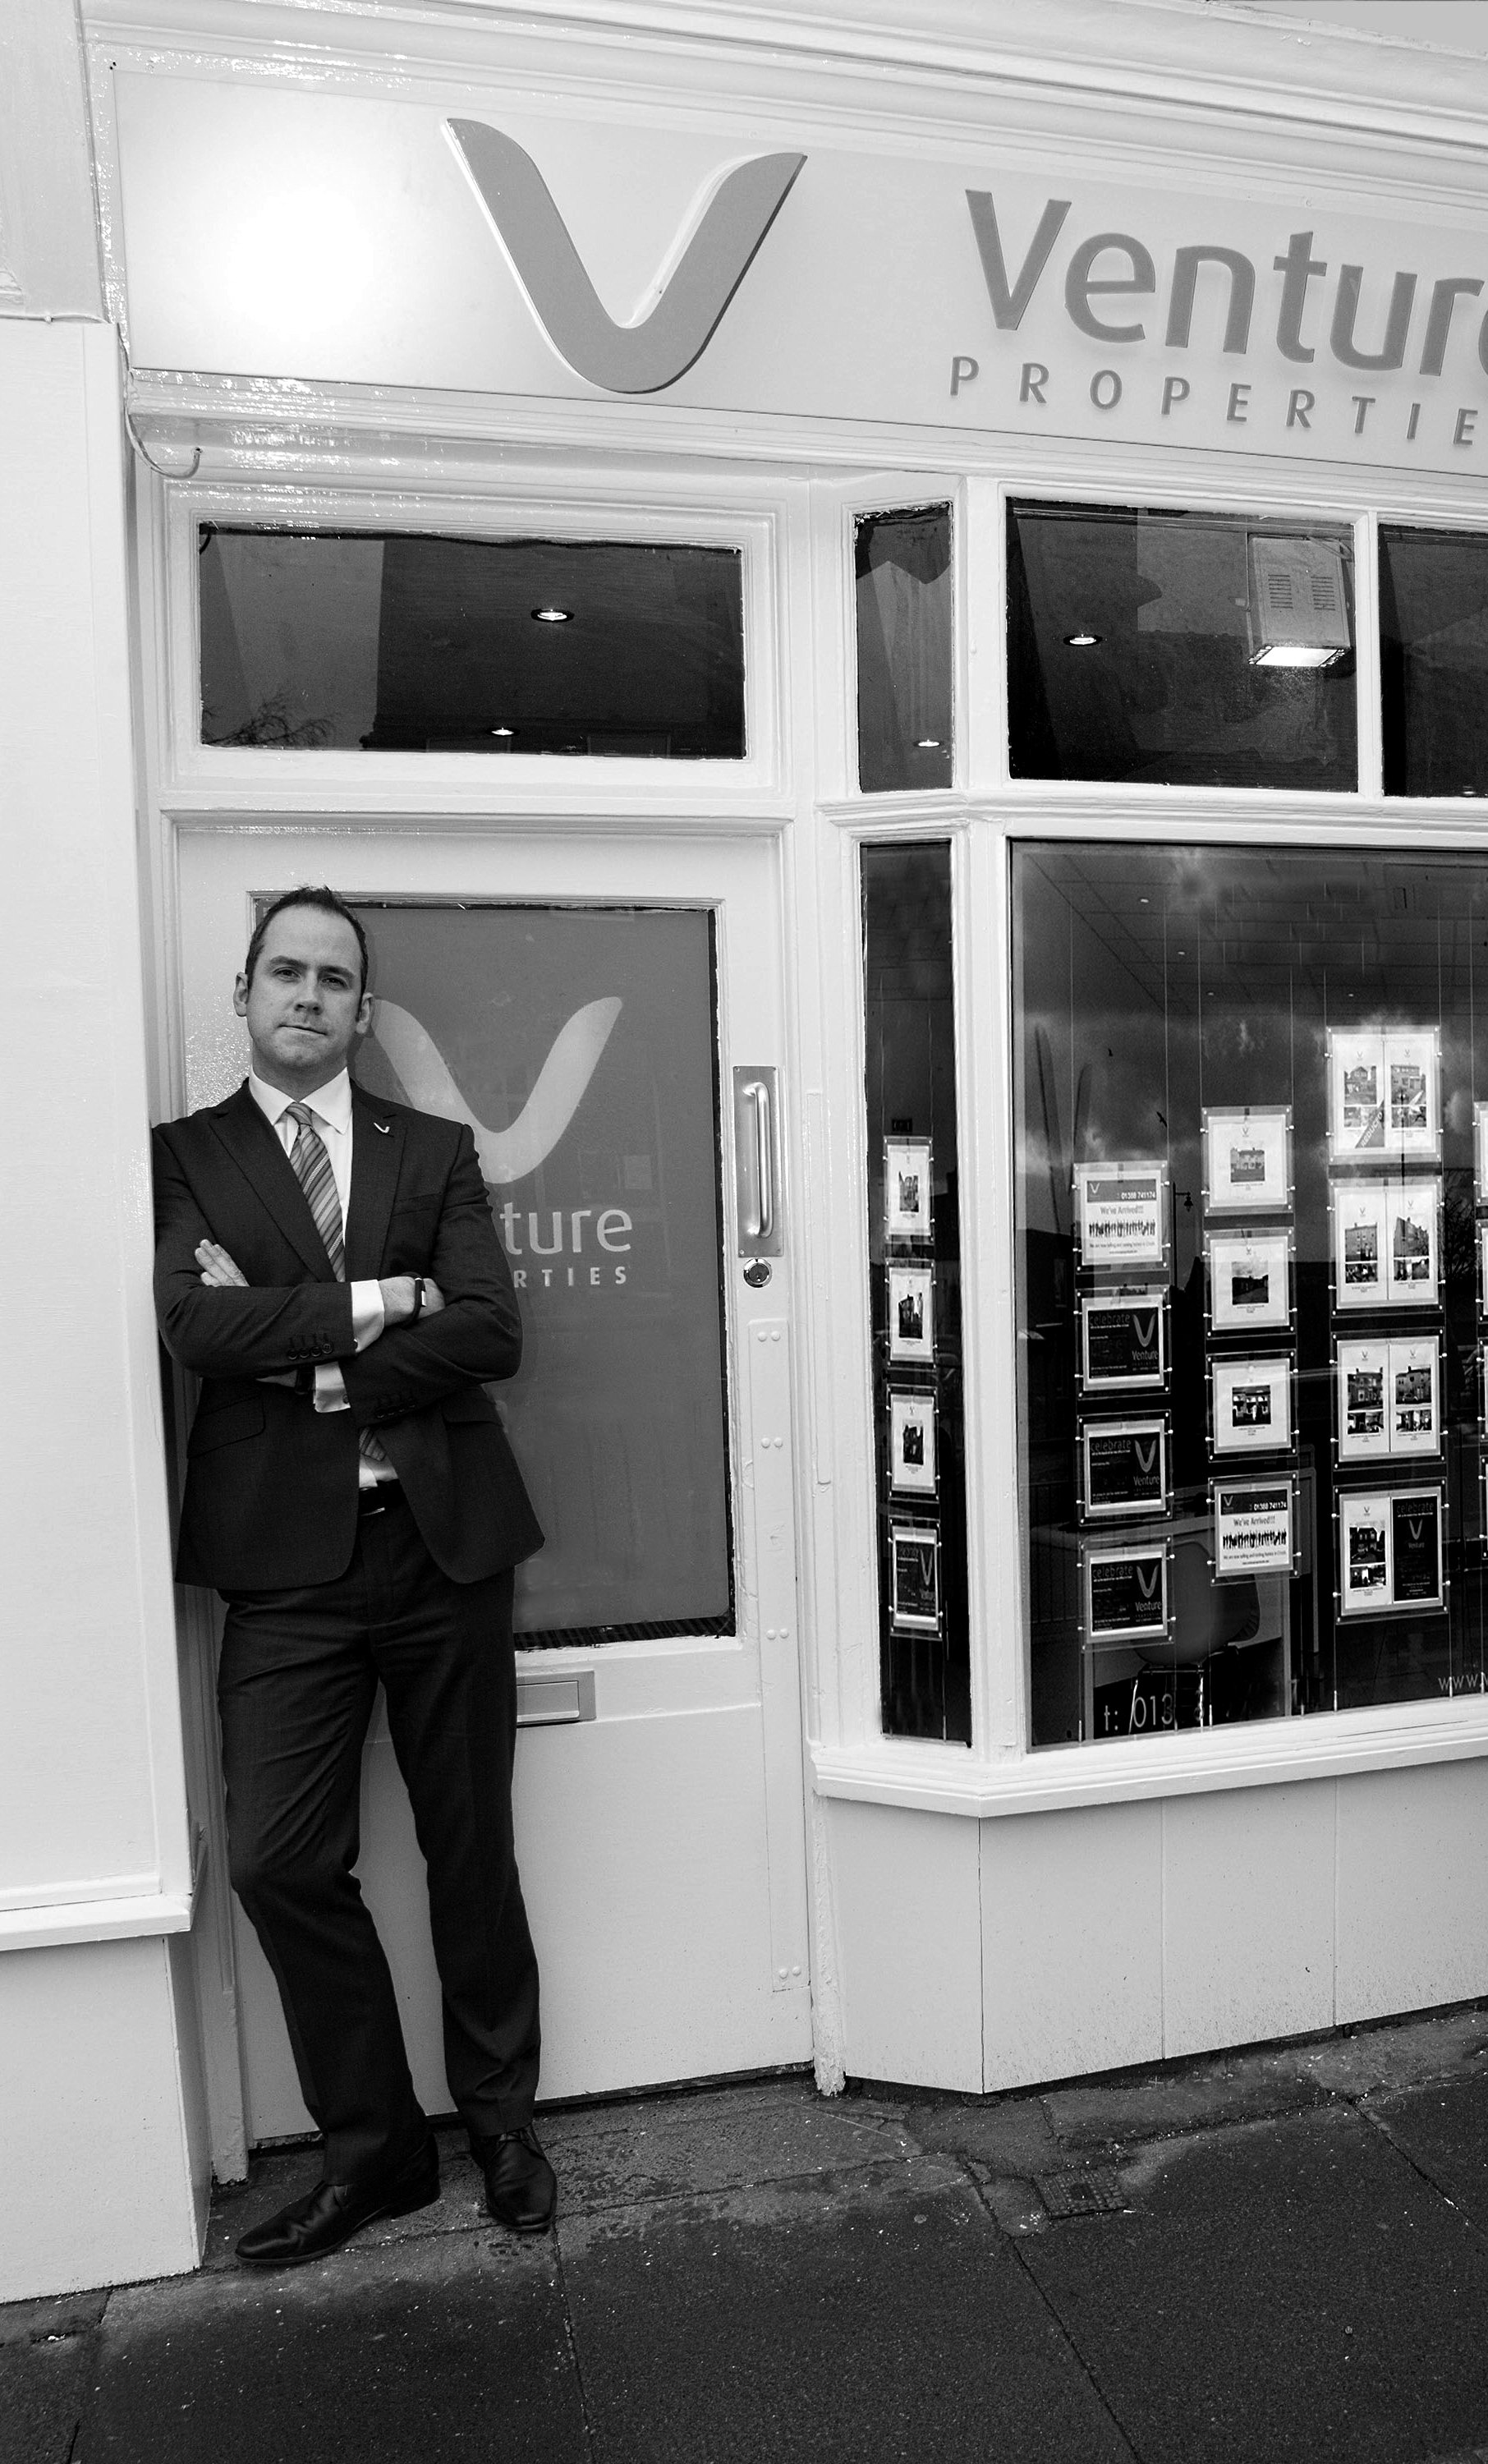 MODEST GROWTH: Michael O'Connor, director of Venture Properties, in Darlington